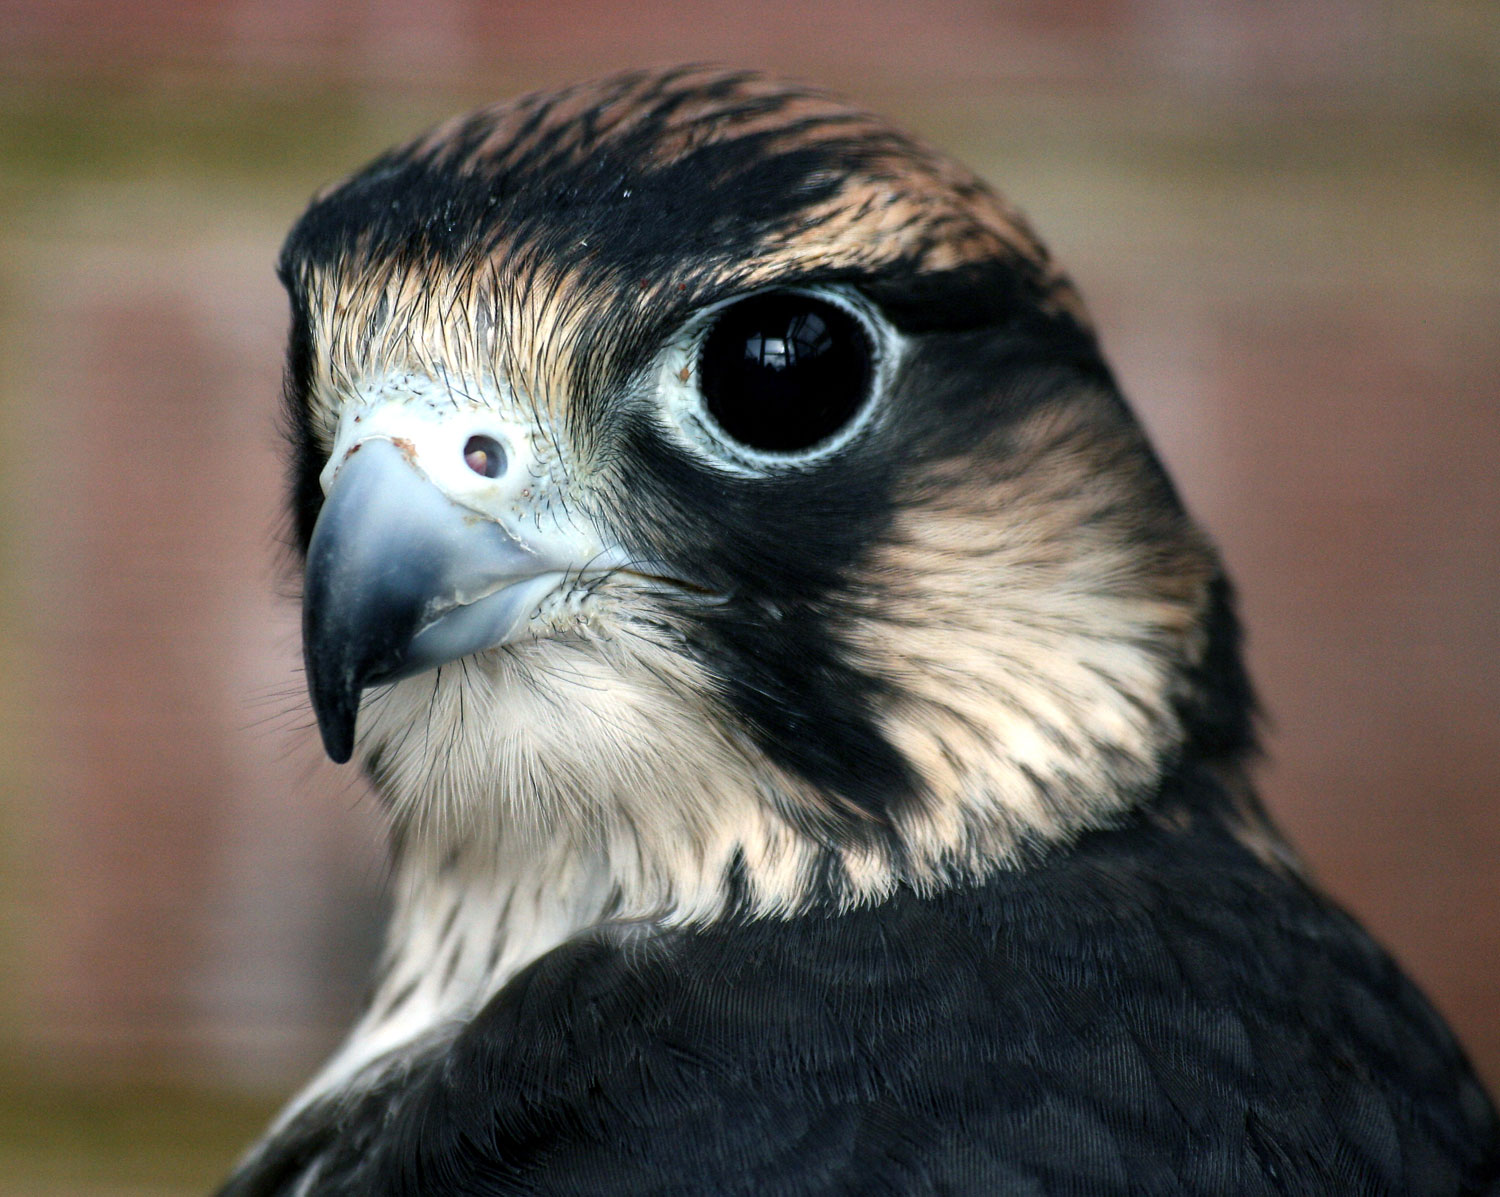 peregrine falcons will defend their turf aggressively, so please respect the closure